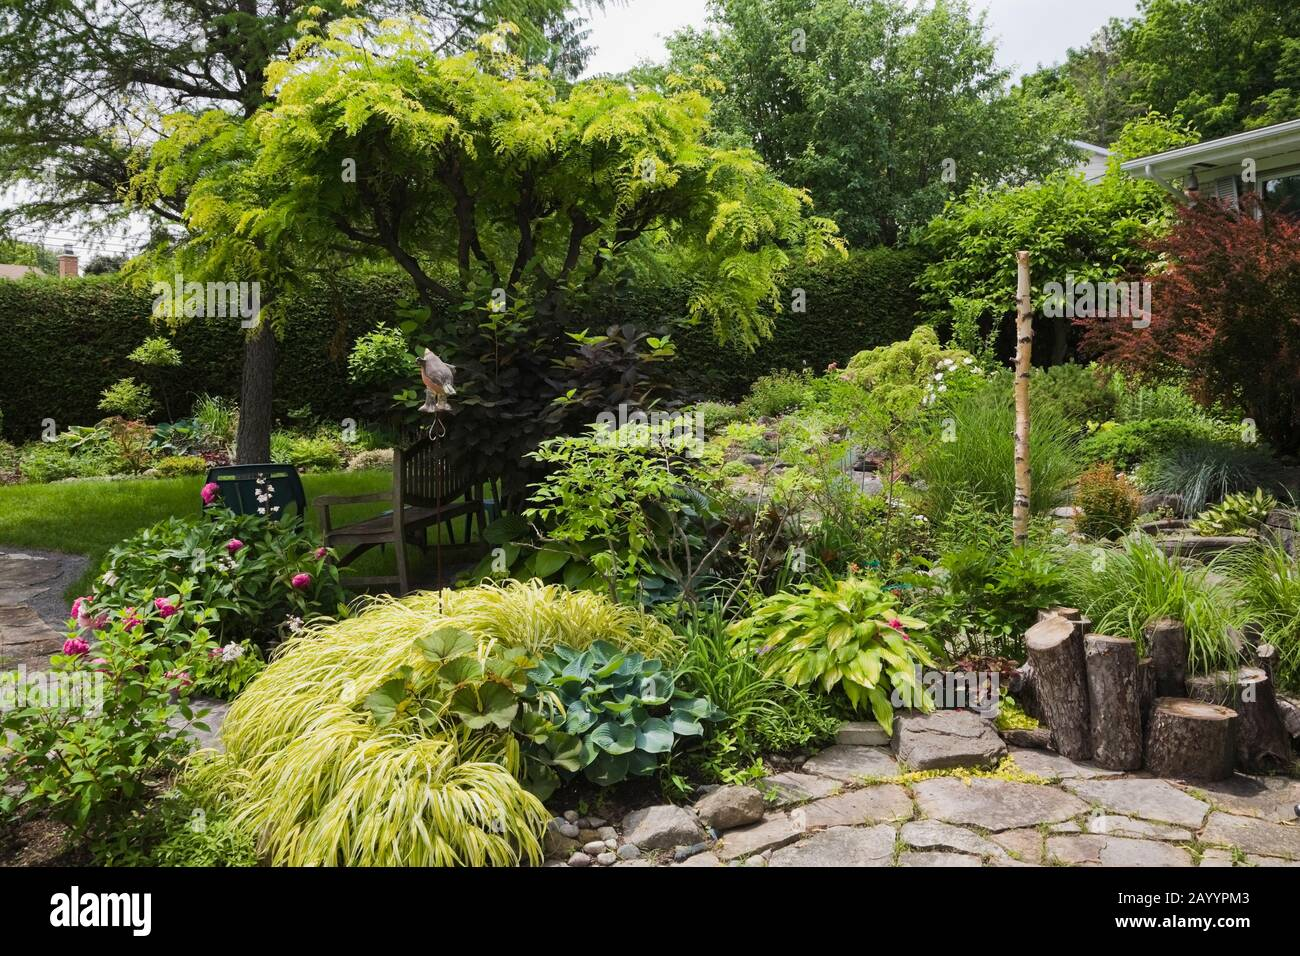 Flagstone Patio And Border With Various Plants Shrubs Trees